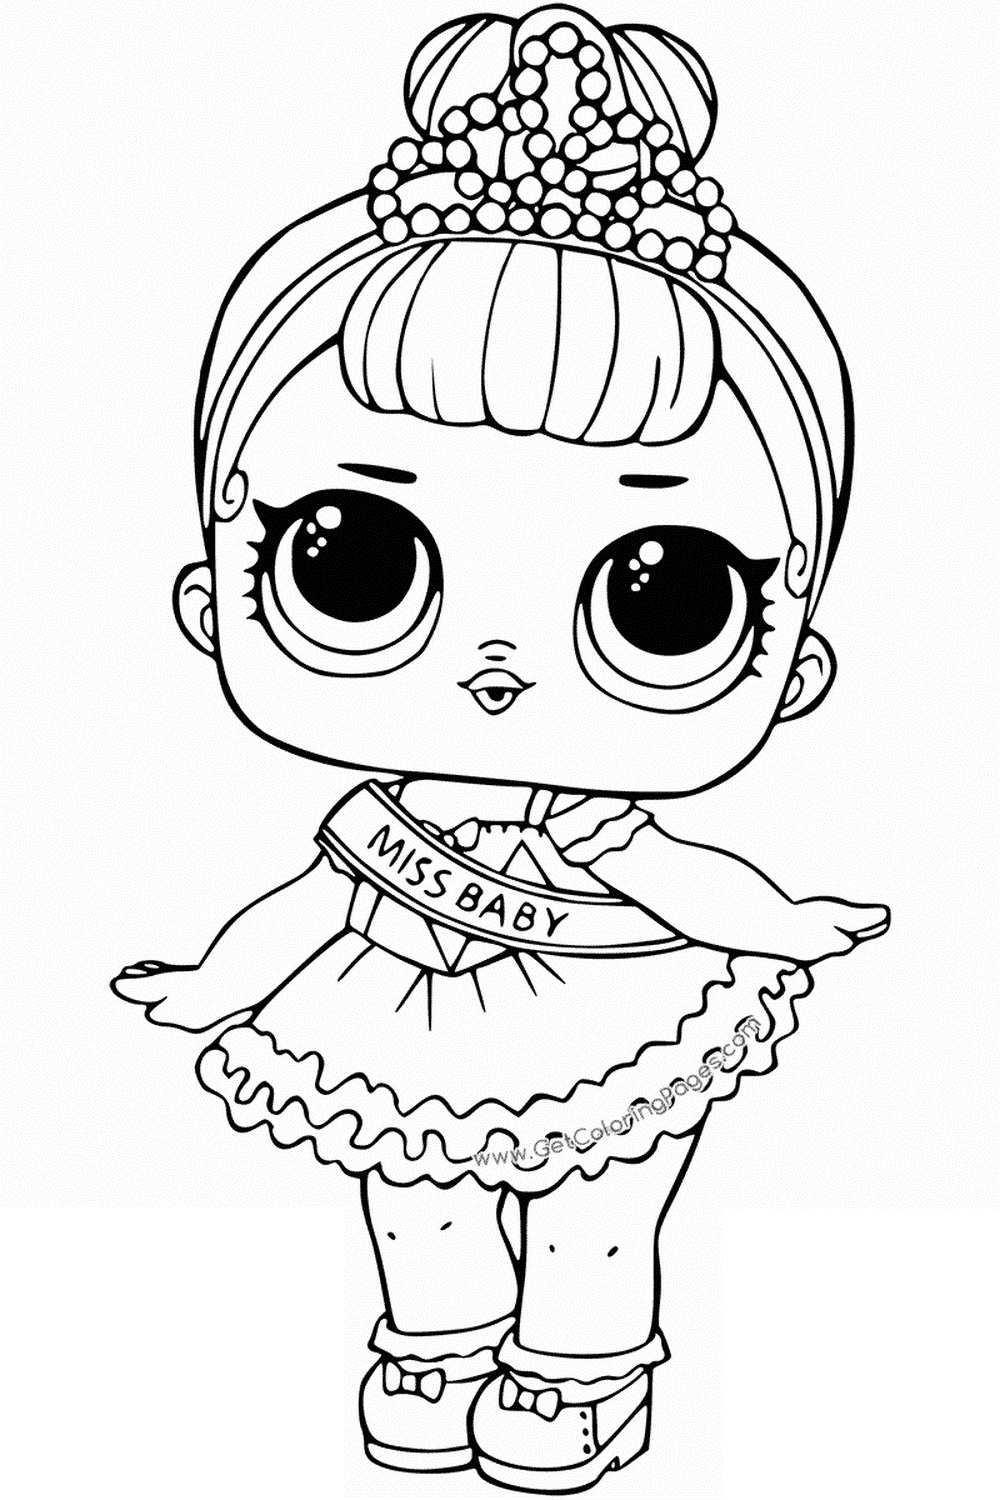 dolls coloring pages lol doll coloring pages at getcoloringscom free coloring pages dolls